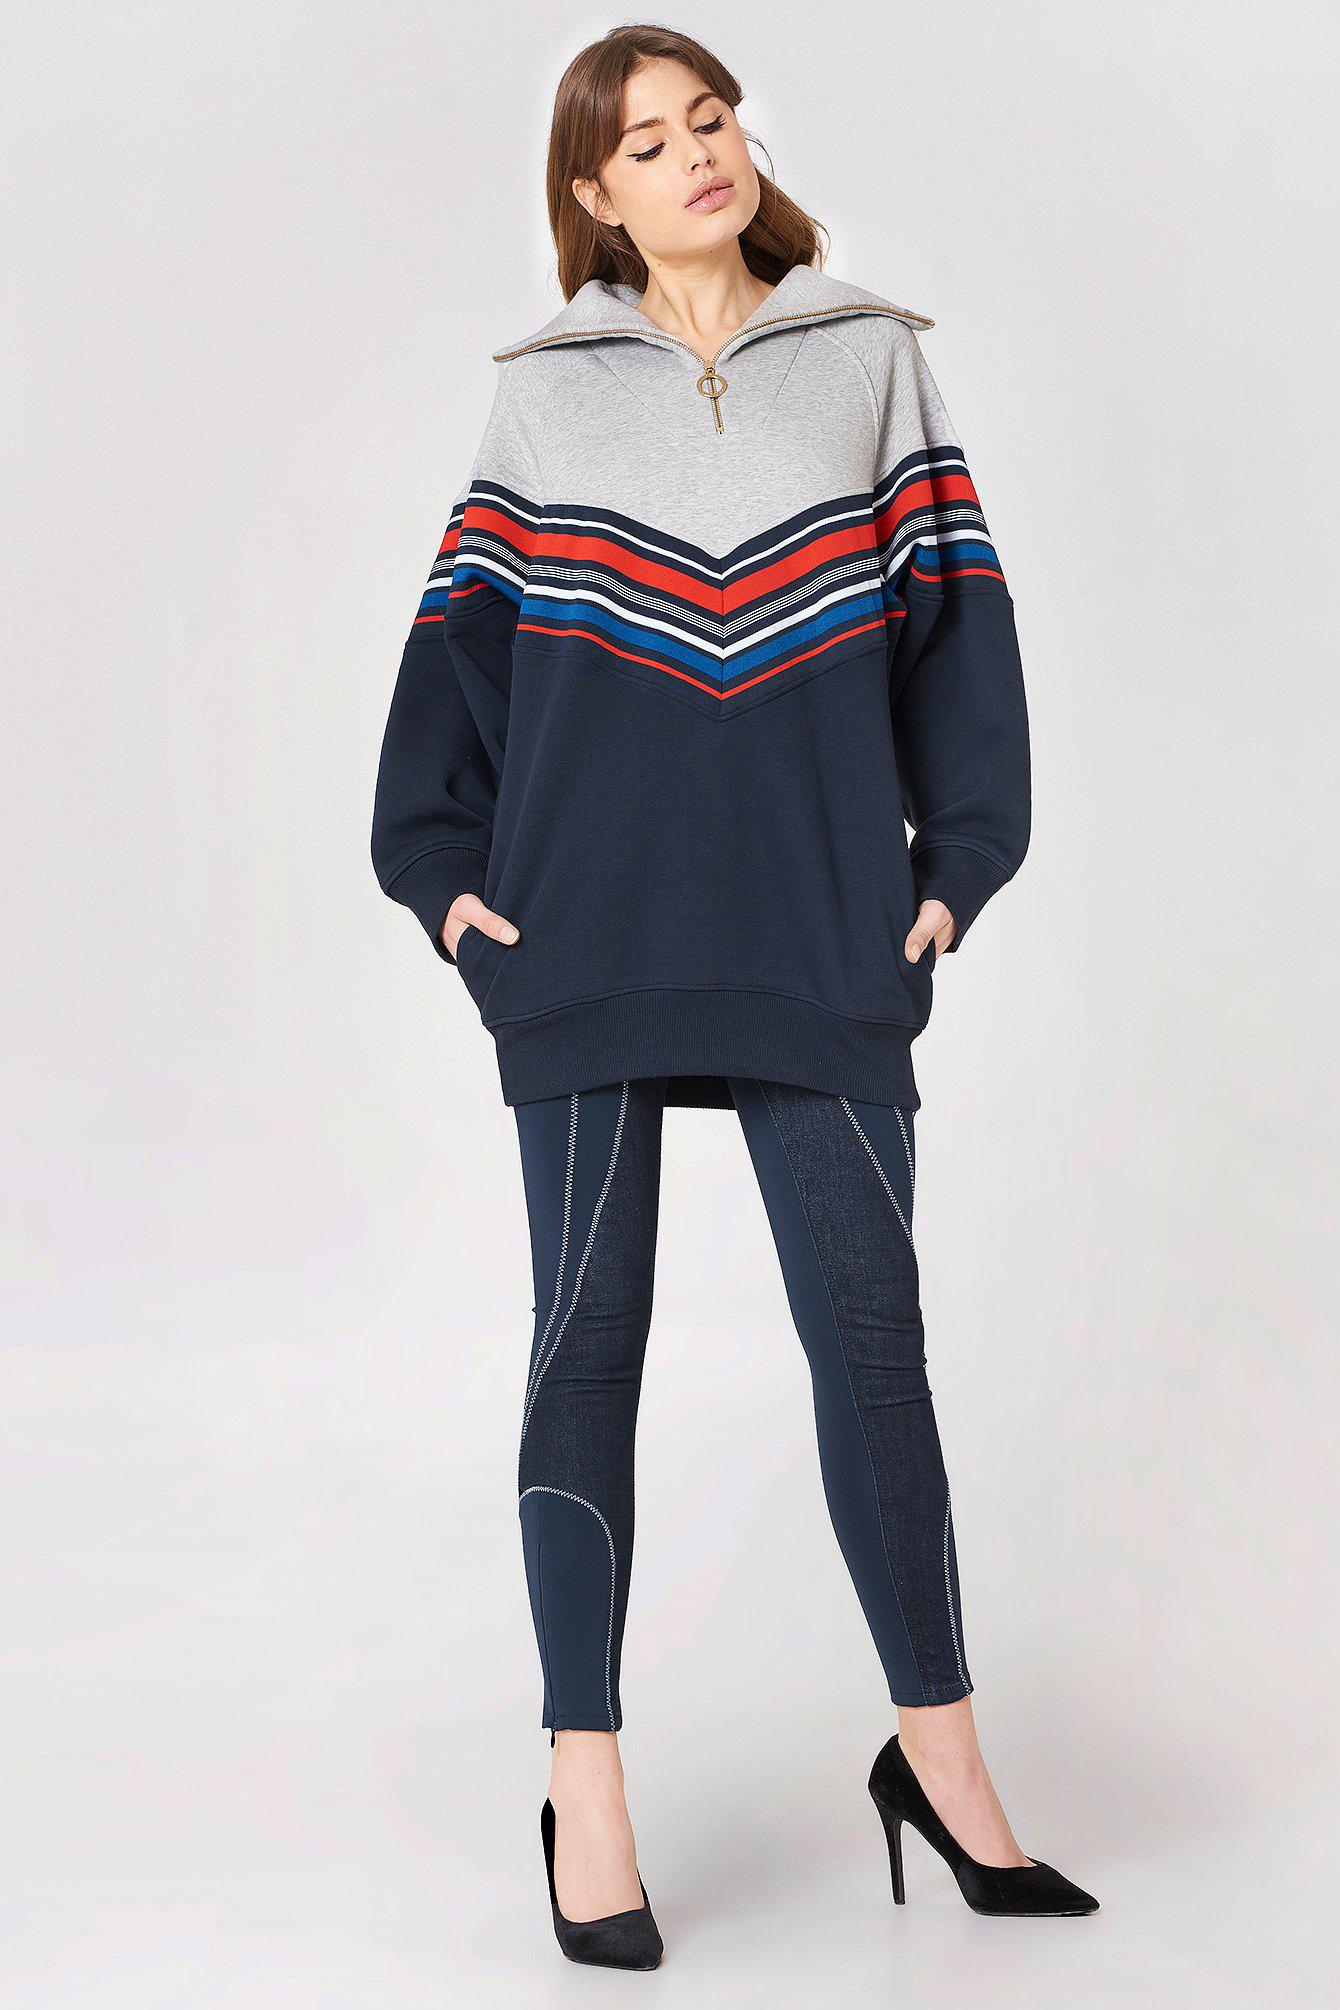 290d1f8f08e Tommy Hilfiger Gigi Hadid Racing Ls Sweat Dress in Gray - Lyst